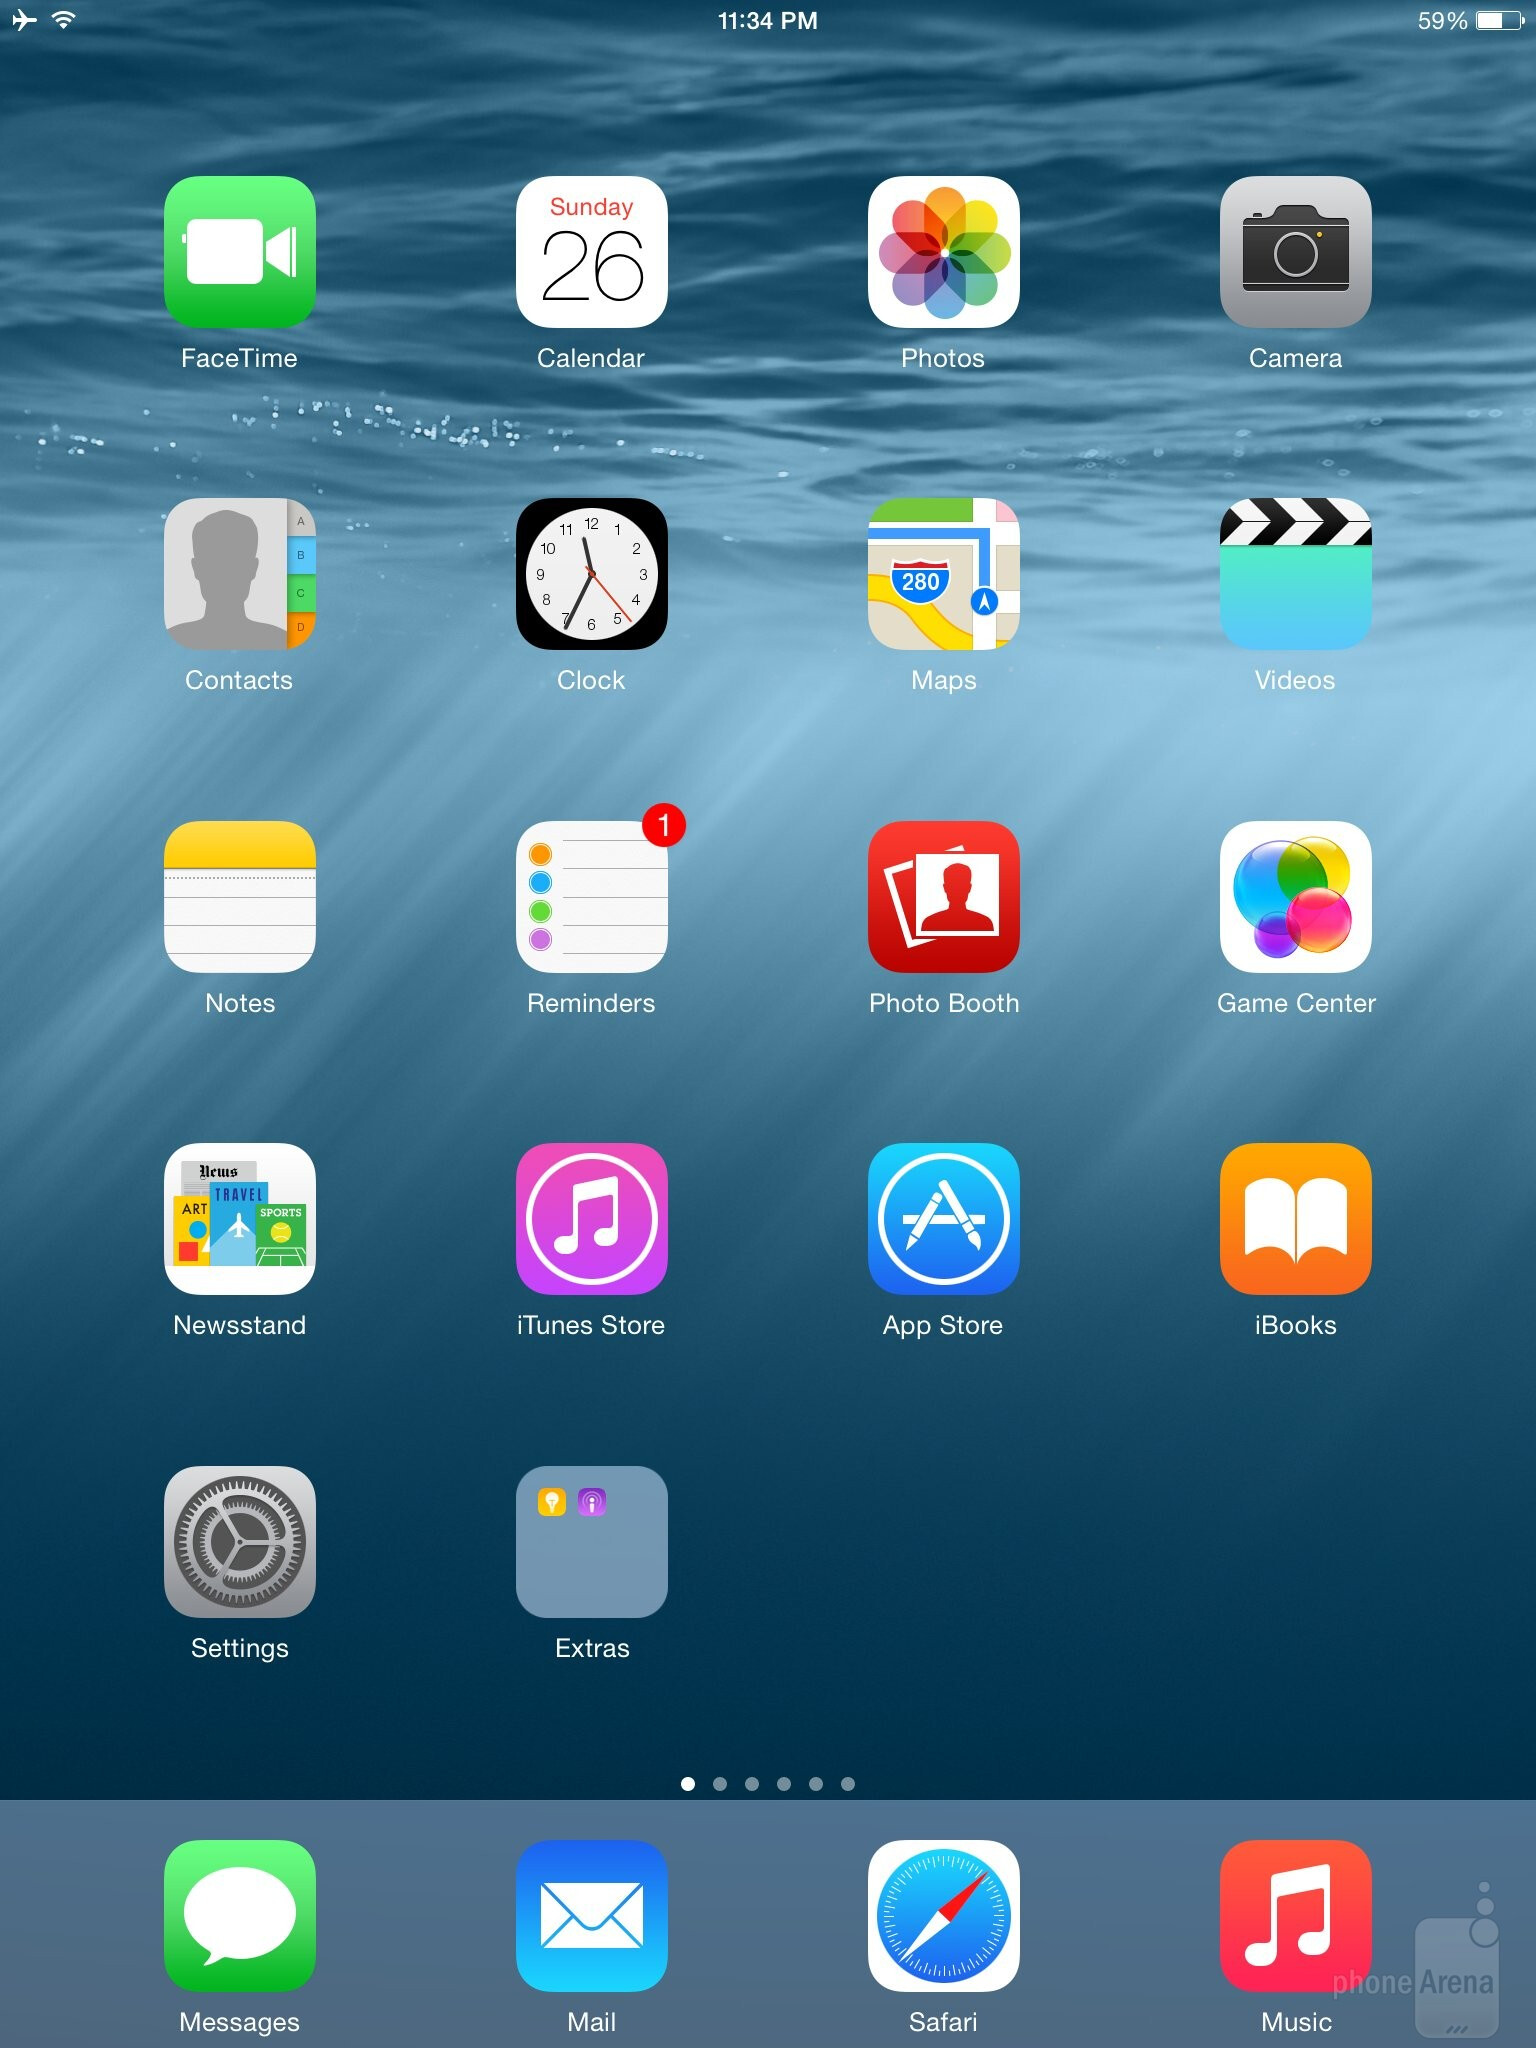 apple ipad air 2 review interface and functionality. Black Bedroom Furniture Sets. Home Design Ideas